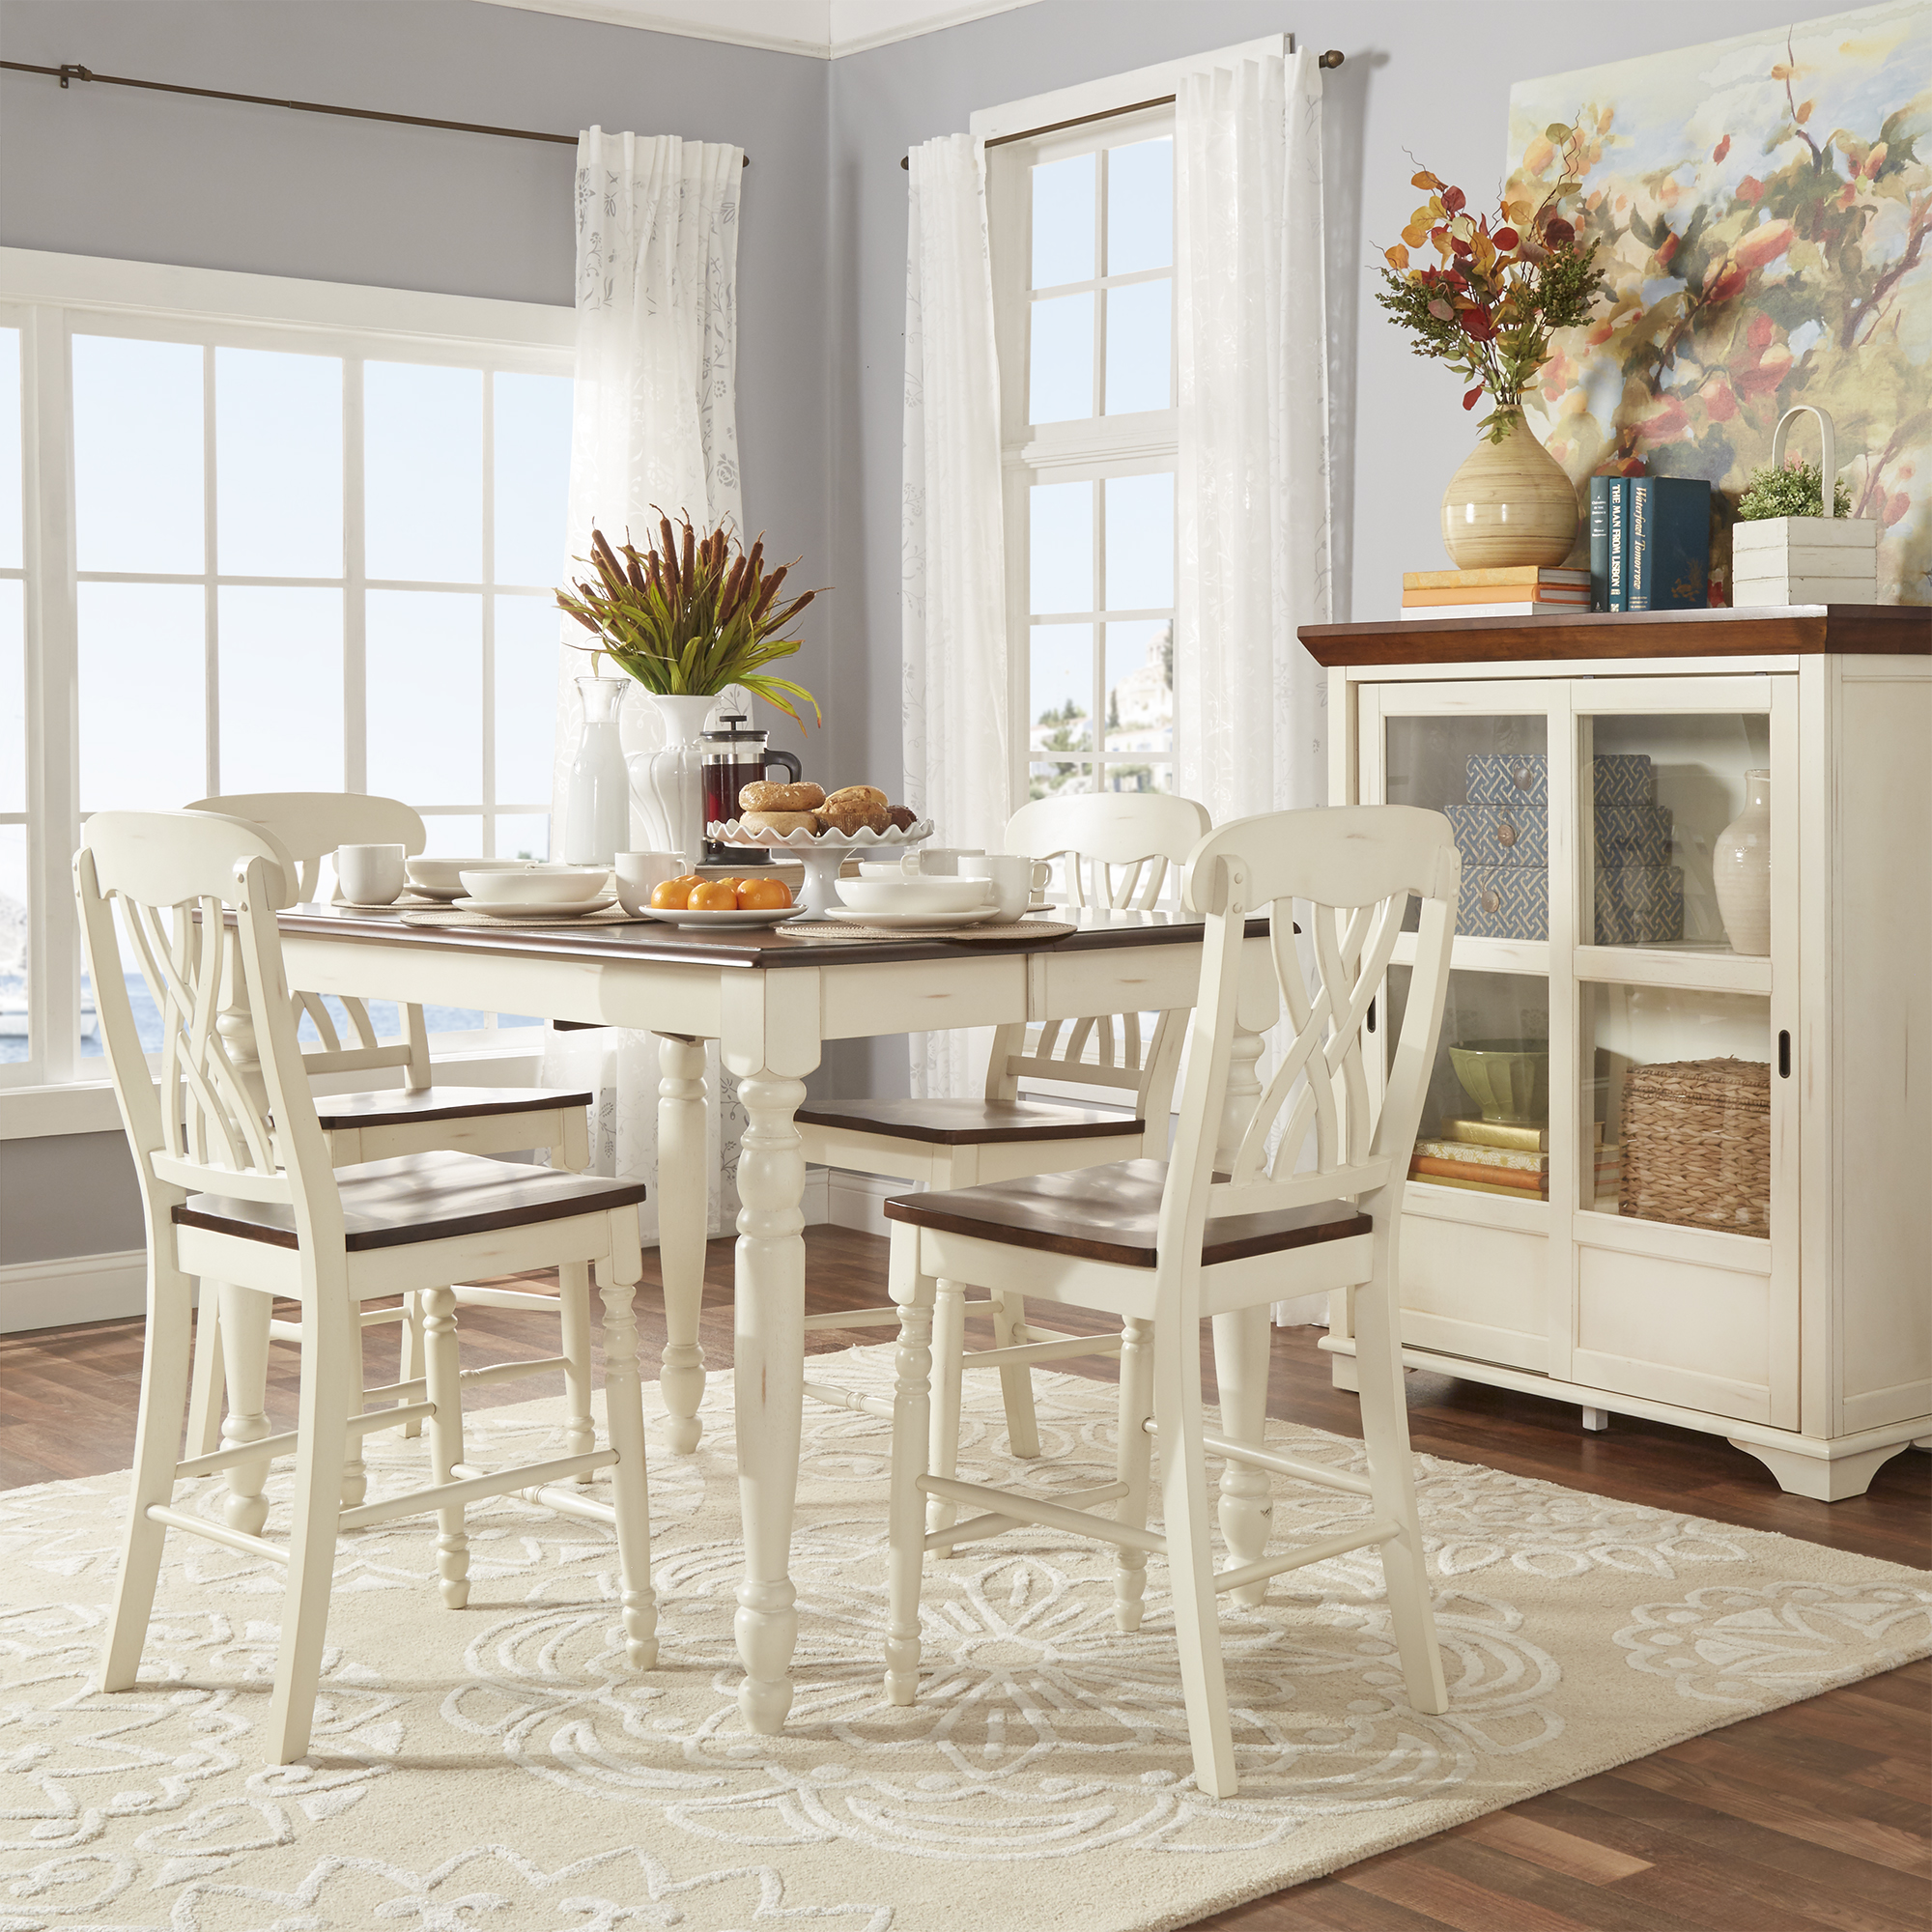 Weston Home Two Tone 5-Piece Counter Height Dining Set, Antique White